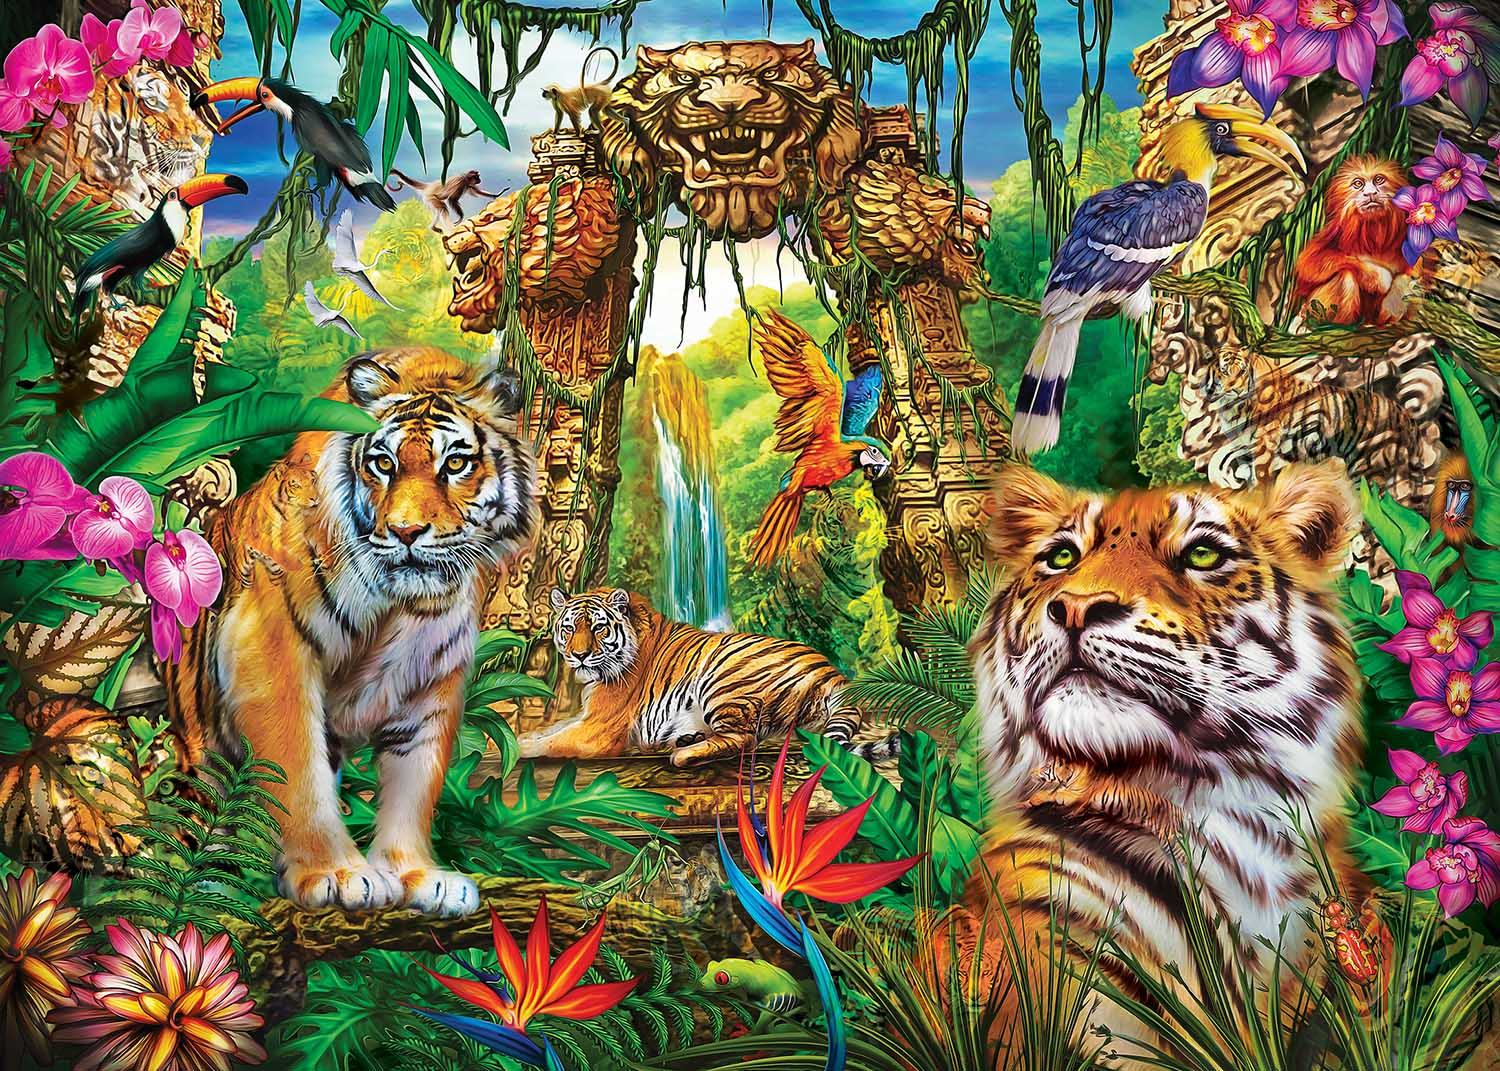 Mystery of the Jungle Jungle Animals Hidden Images